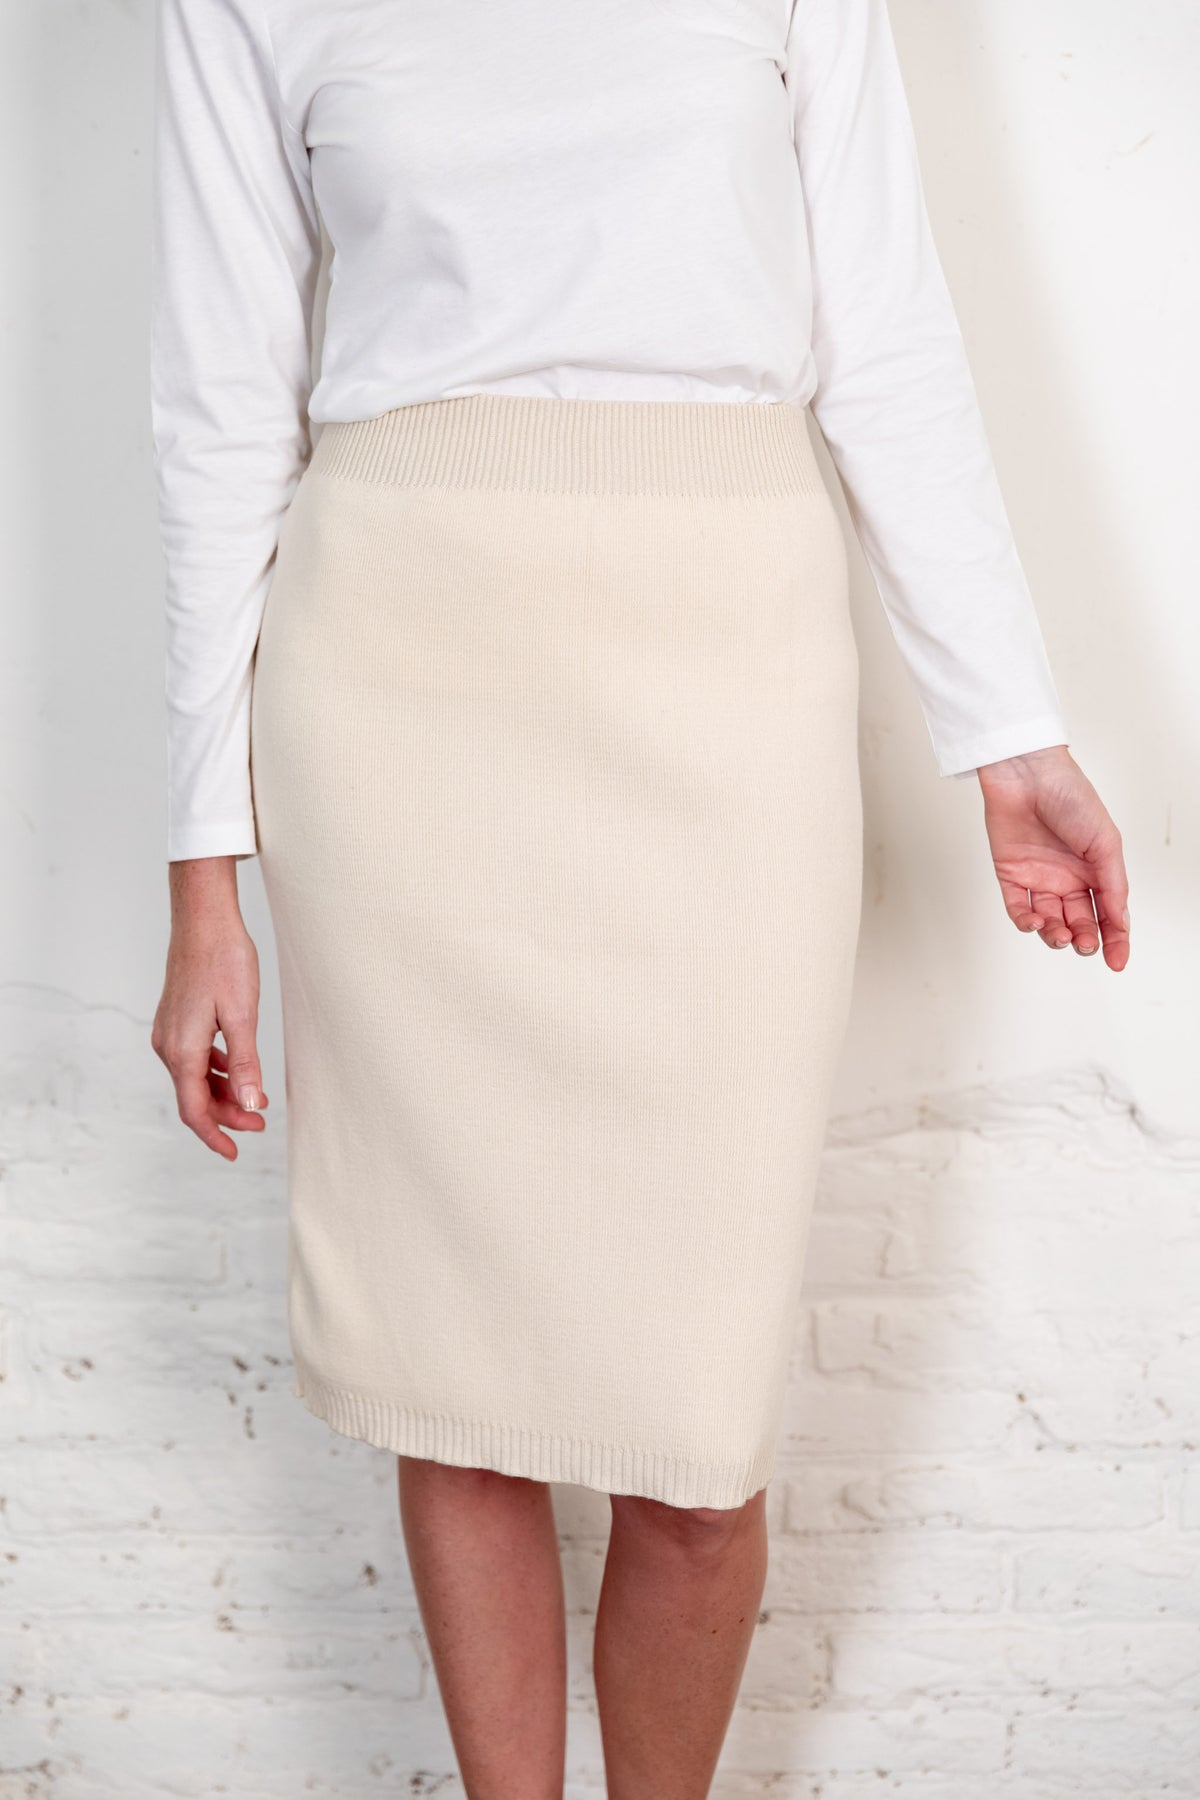 Fapun skirt natural. Organic woman skirt. The Nordic Leaves. Fair trade. Organic cotton. Organic clothing. Sustainable fashion